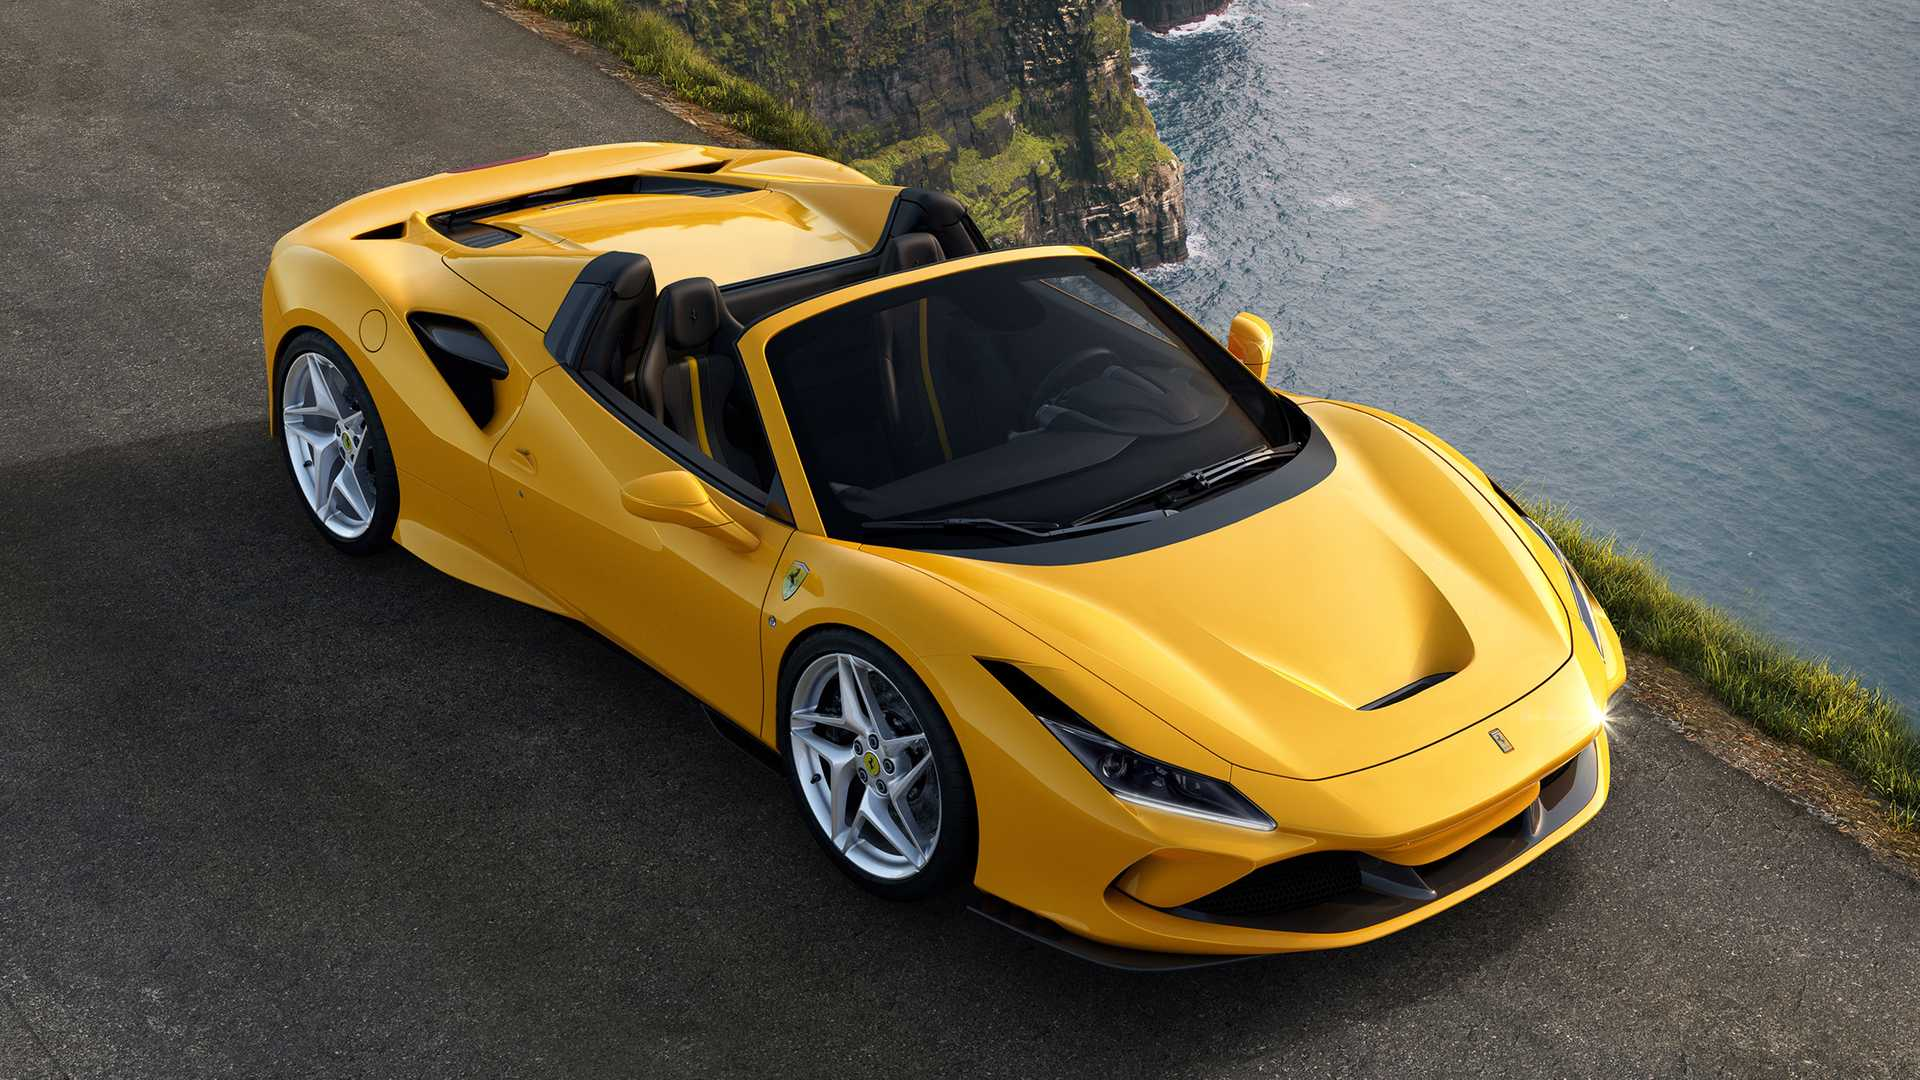 Ferrari F8 Spider revealed with more power, less weight than 488 Spider